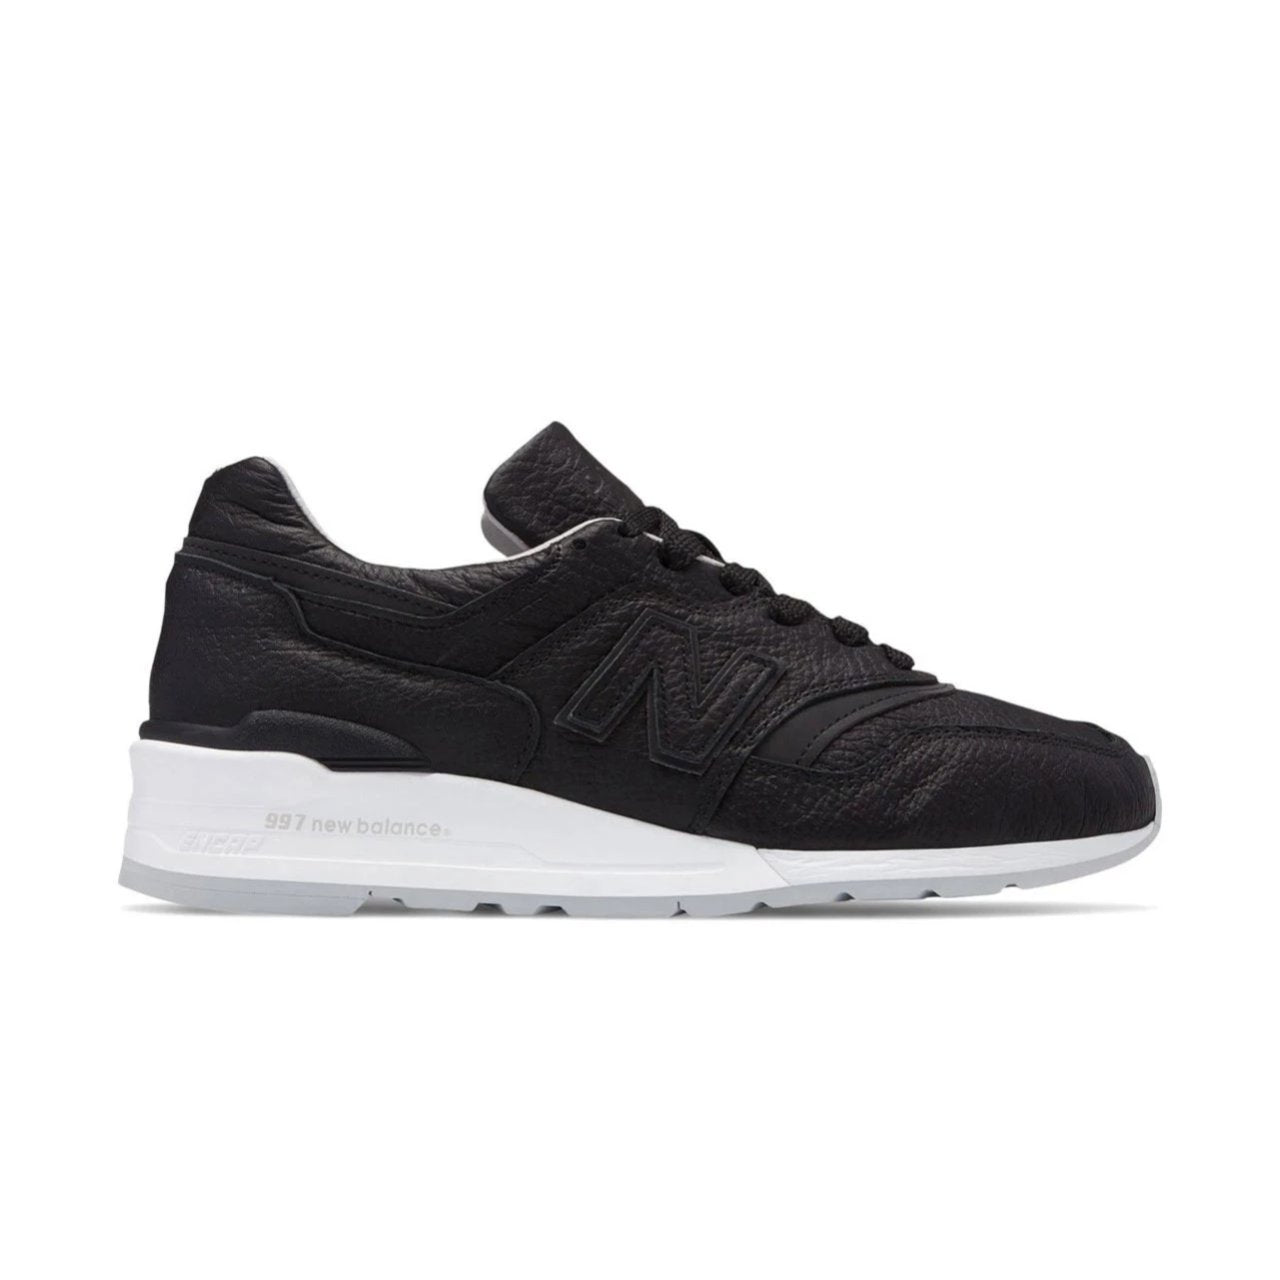 New Balance 997 Bison Made in USA Sneaker